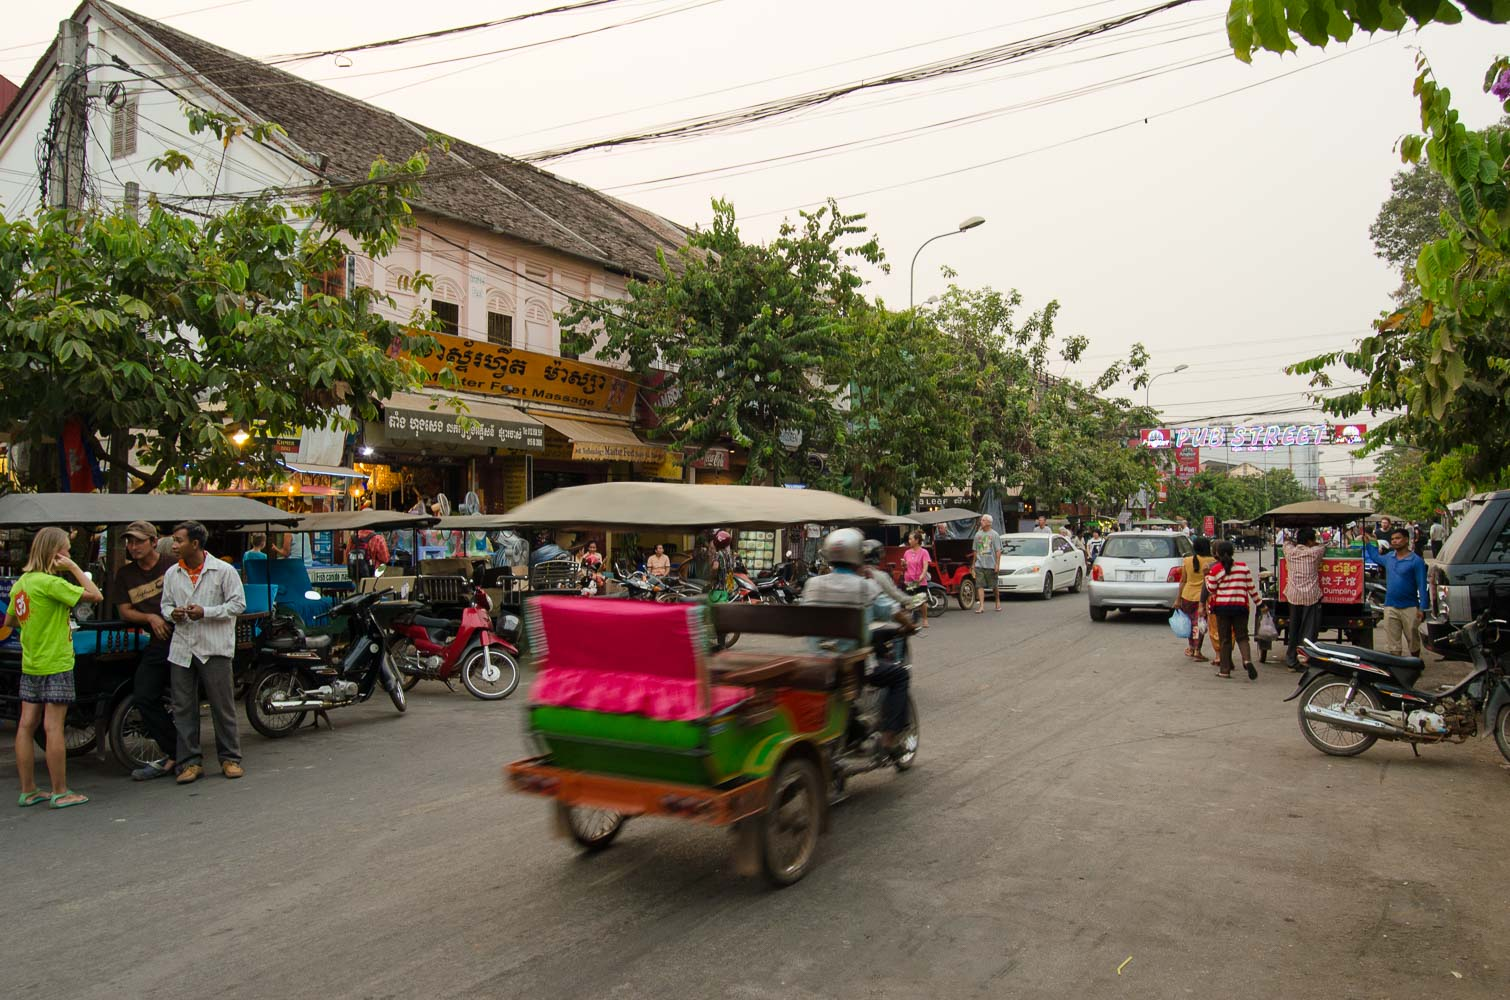 A tuk tuk speeding through the busy pub street in Siem Reap, Cambodia.